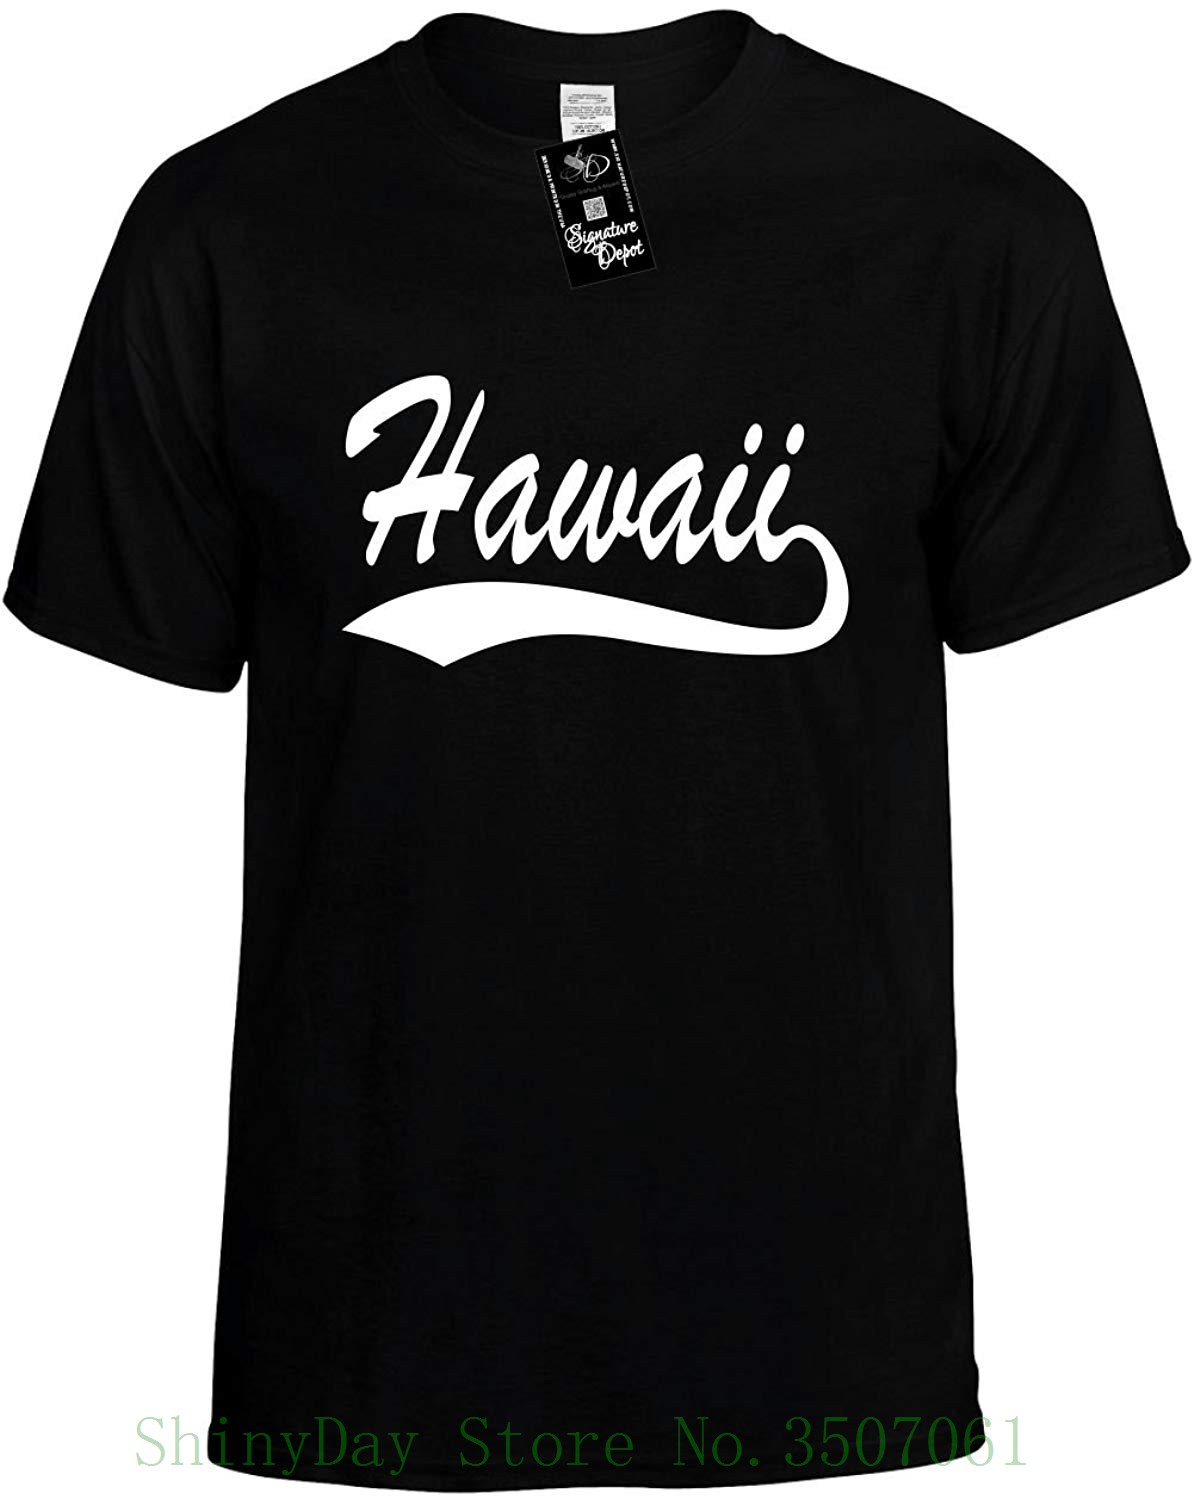 b4dc374da9e4 Mens Funny T Shirt Hawaii Baseball Font Hawaiian Unisex Shirt 2018 ...